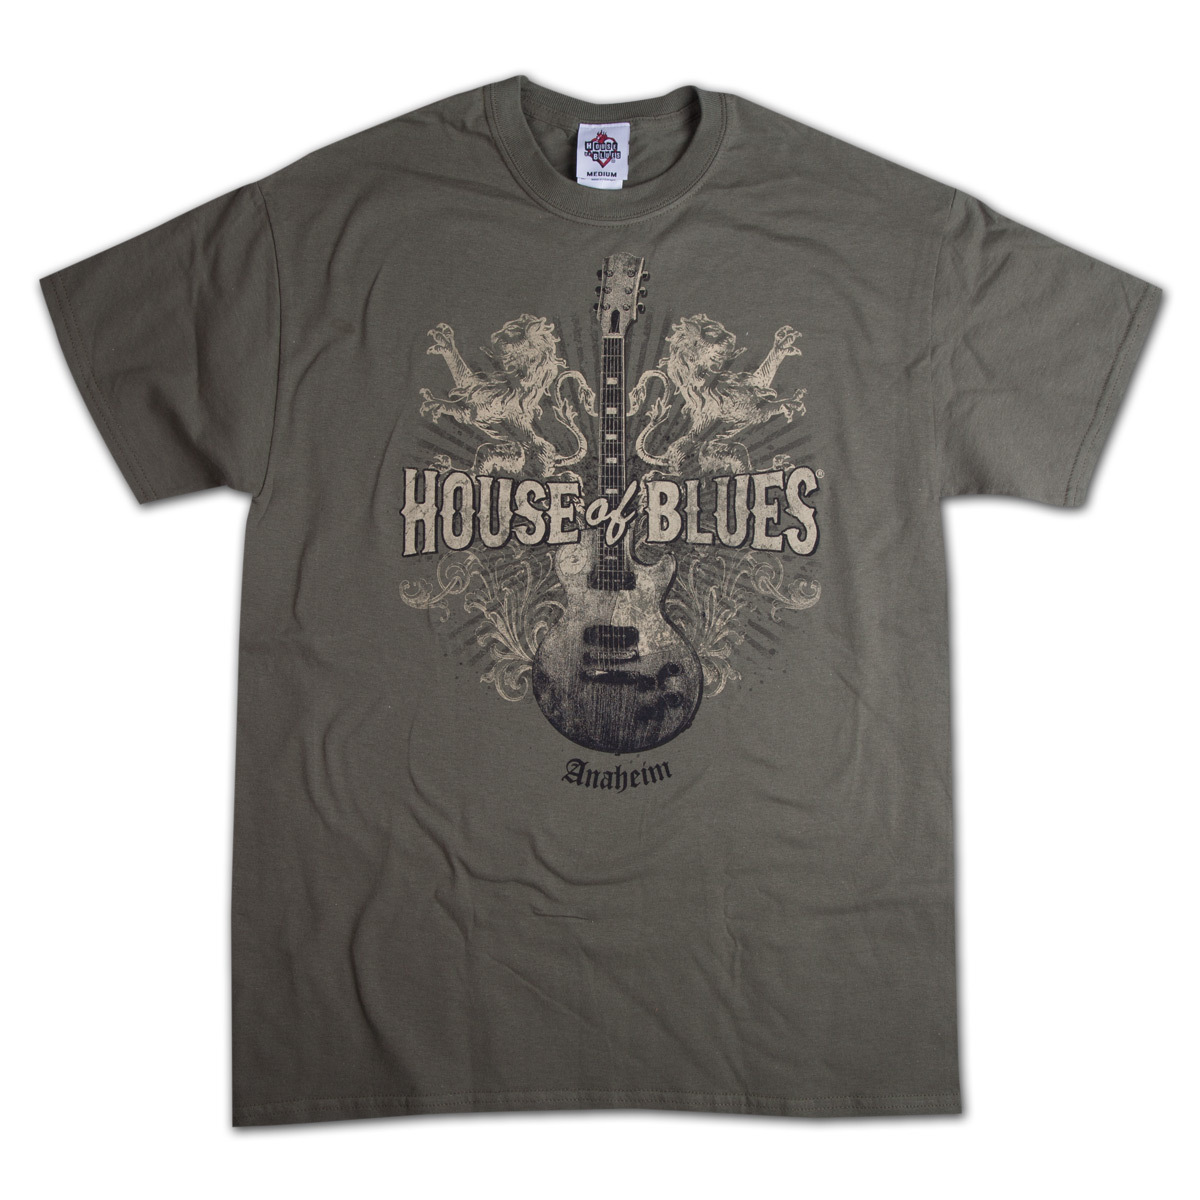 Lions guitar t shirt anaheim shop the house of blues for King s fish house anaheim